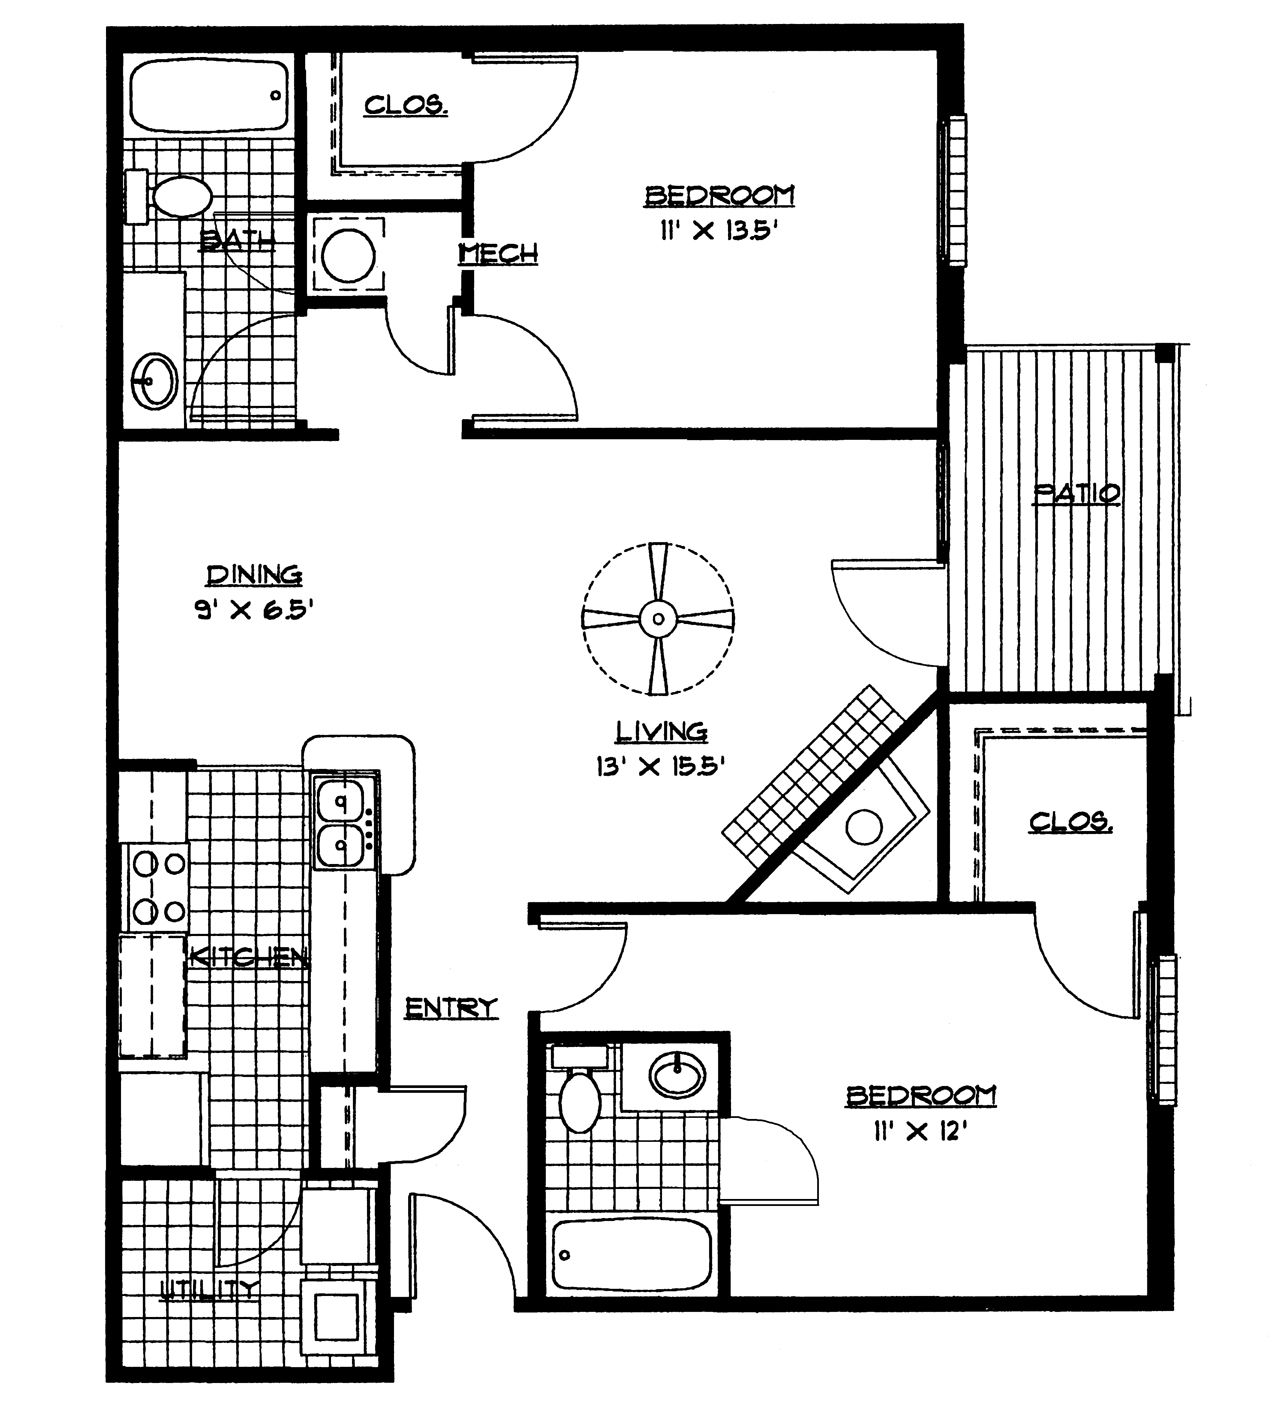 Small house floor plans 2 bedrooms bedroom floor plan download printable pdf tiny houses - Bedroom house floor plans ...